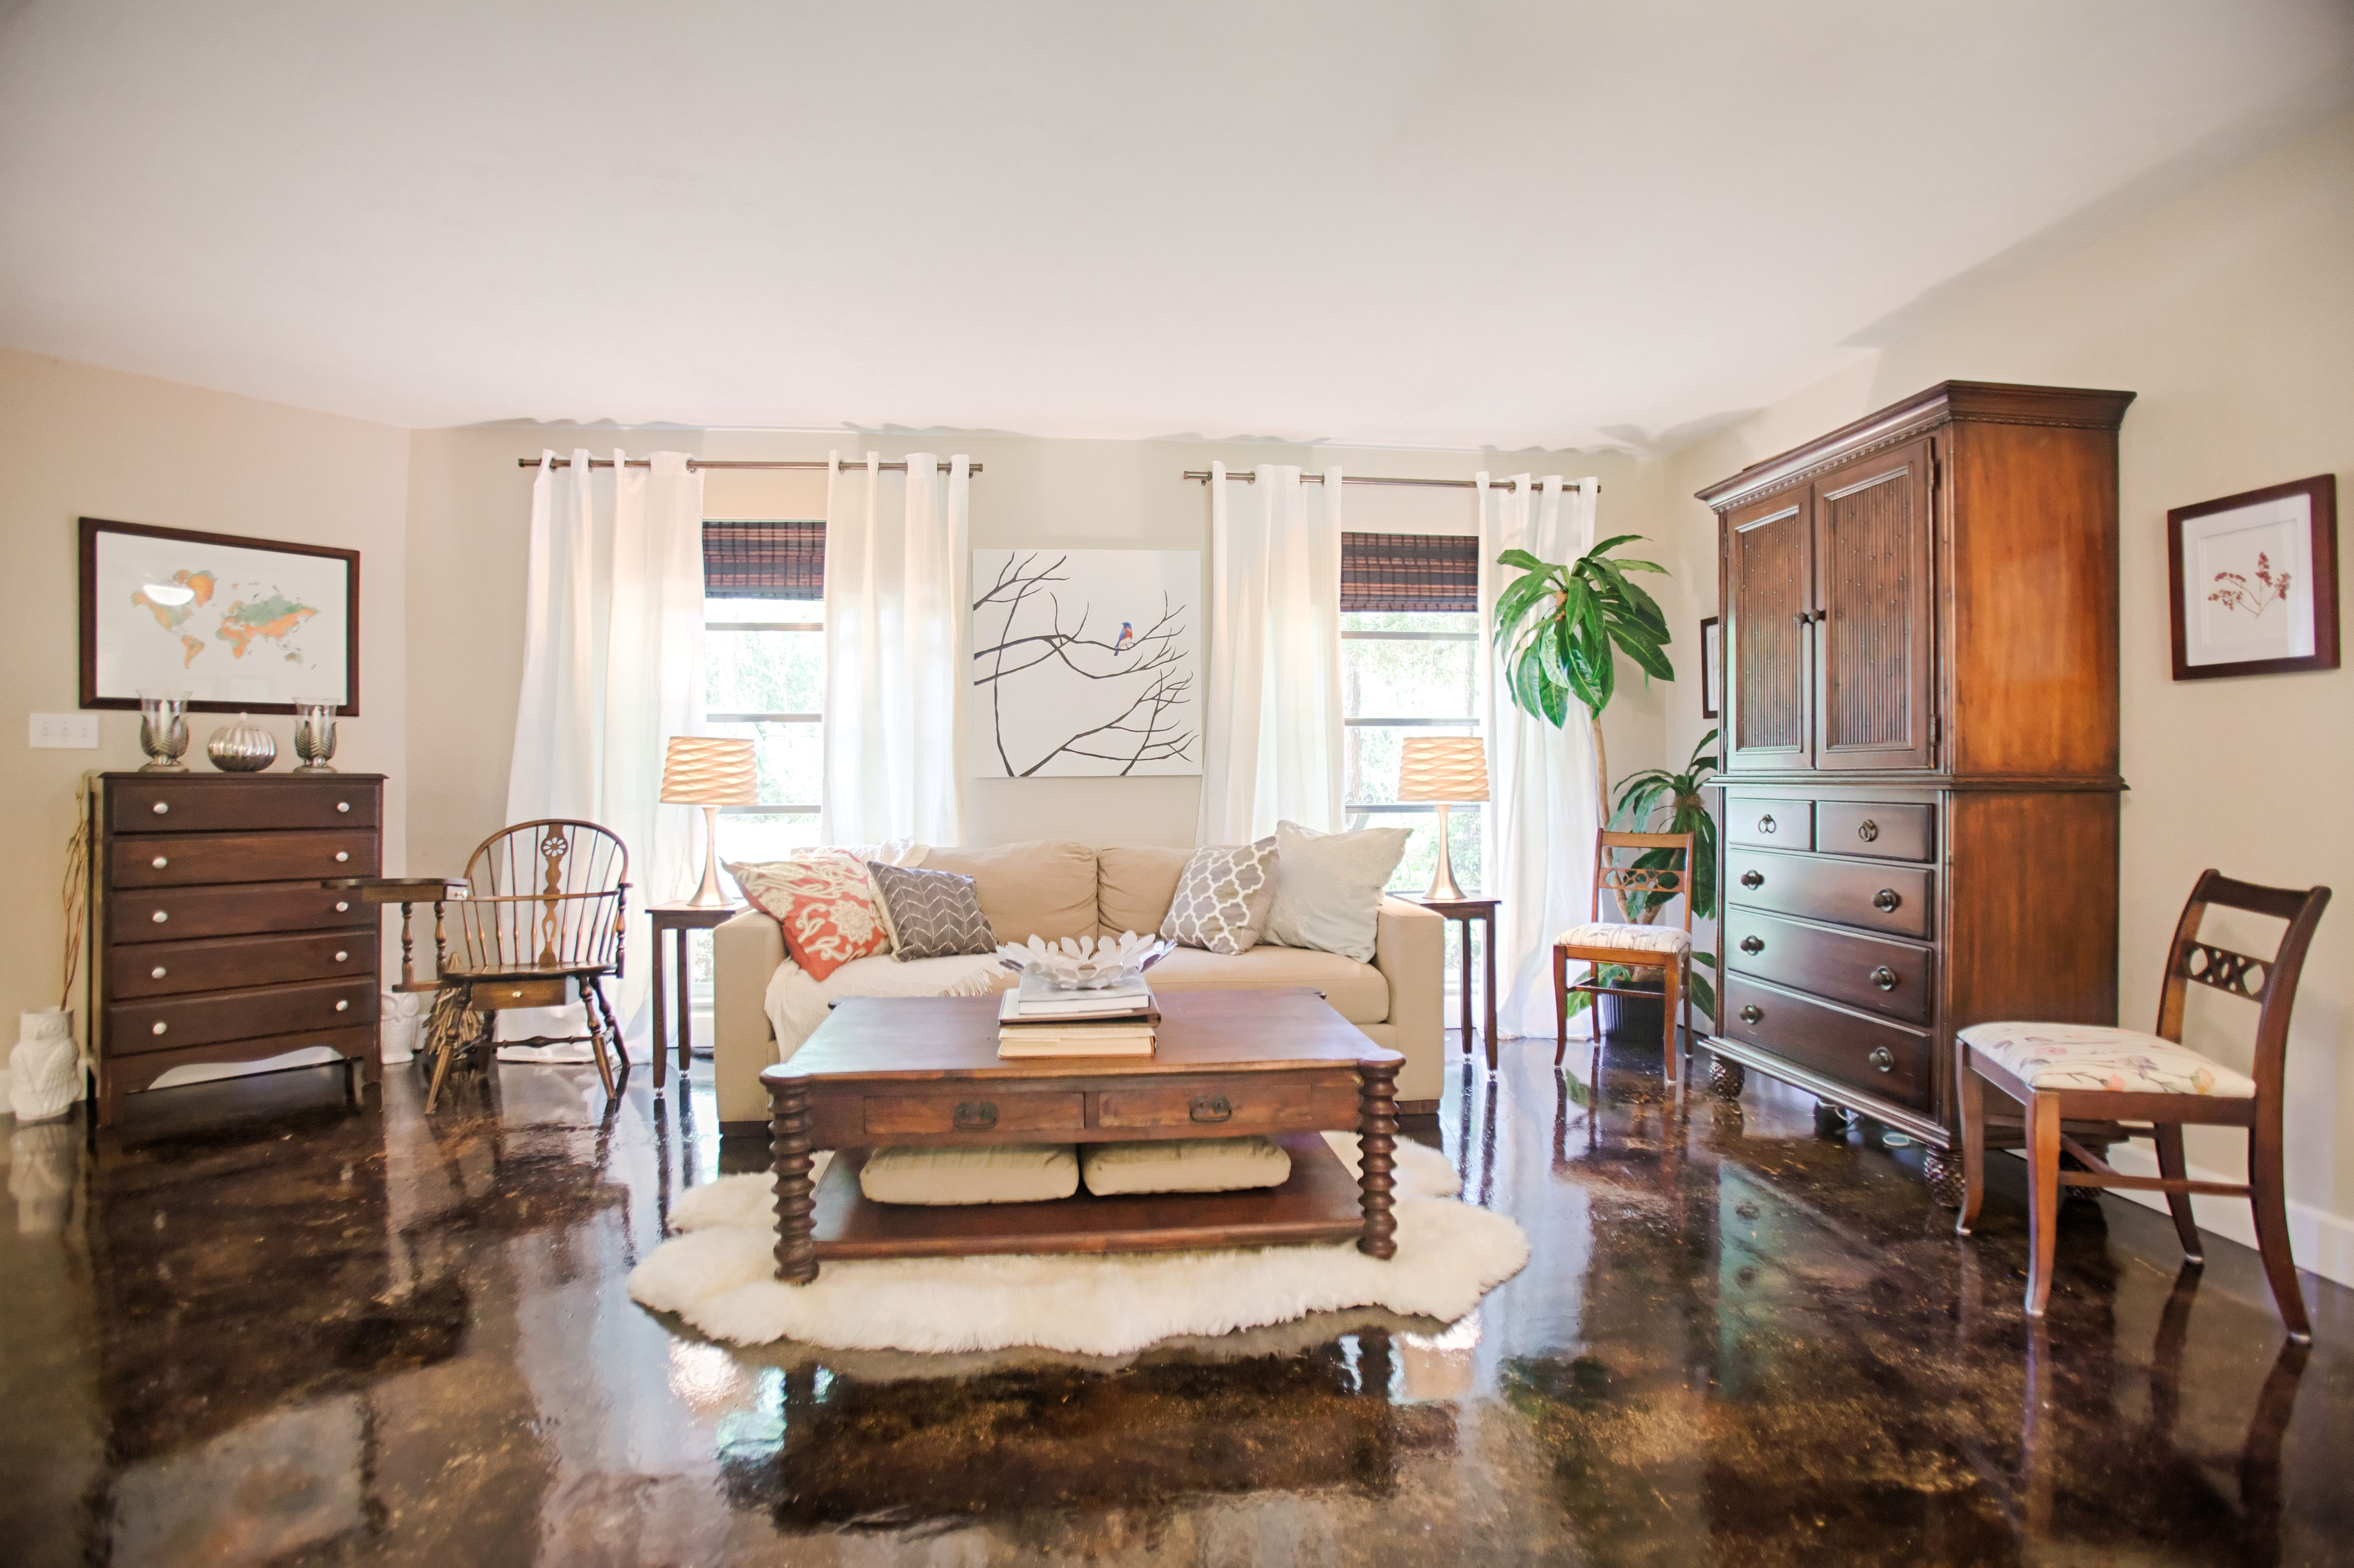 The living room painted benjamin moores cedar key is decorated with secondhand furniture